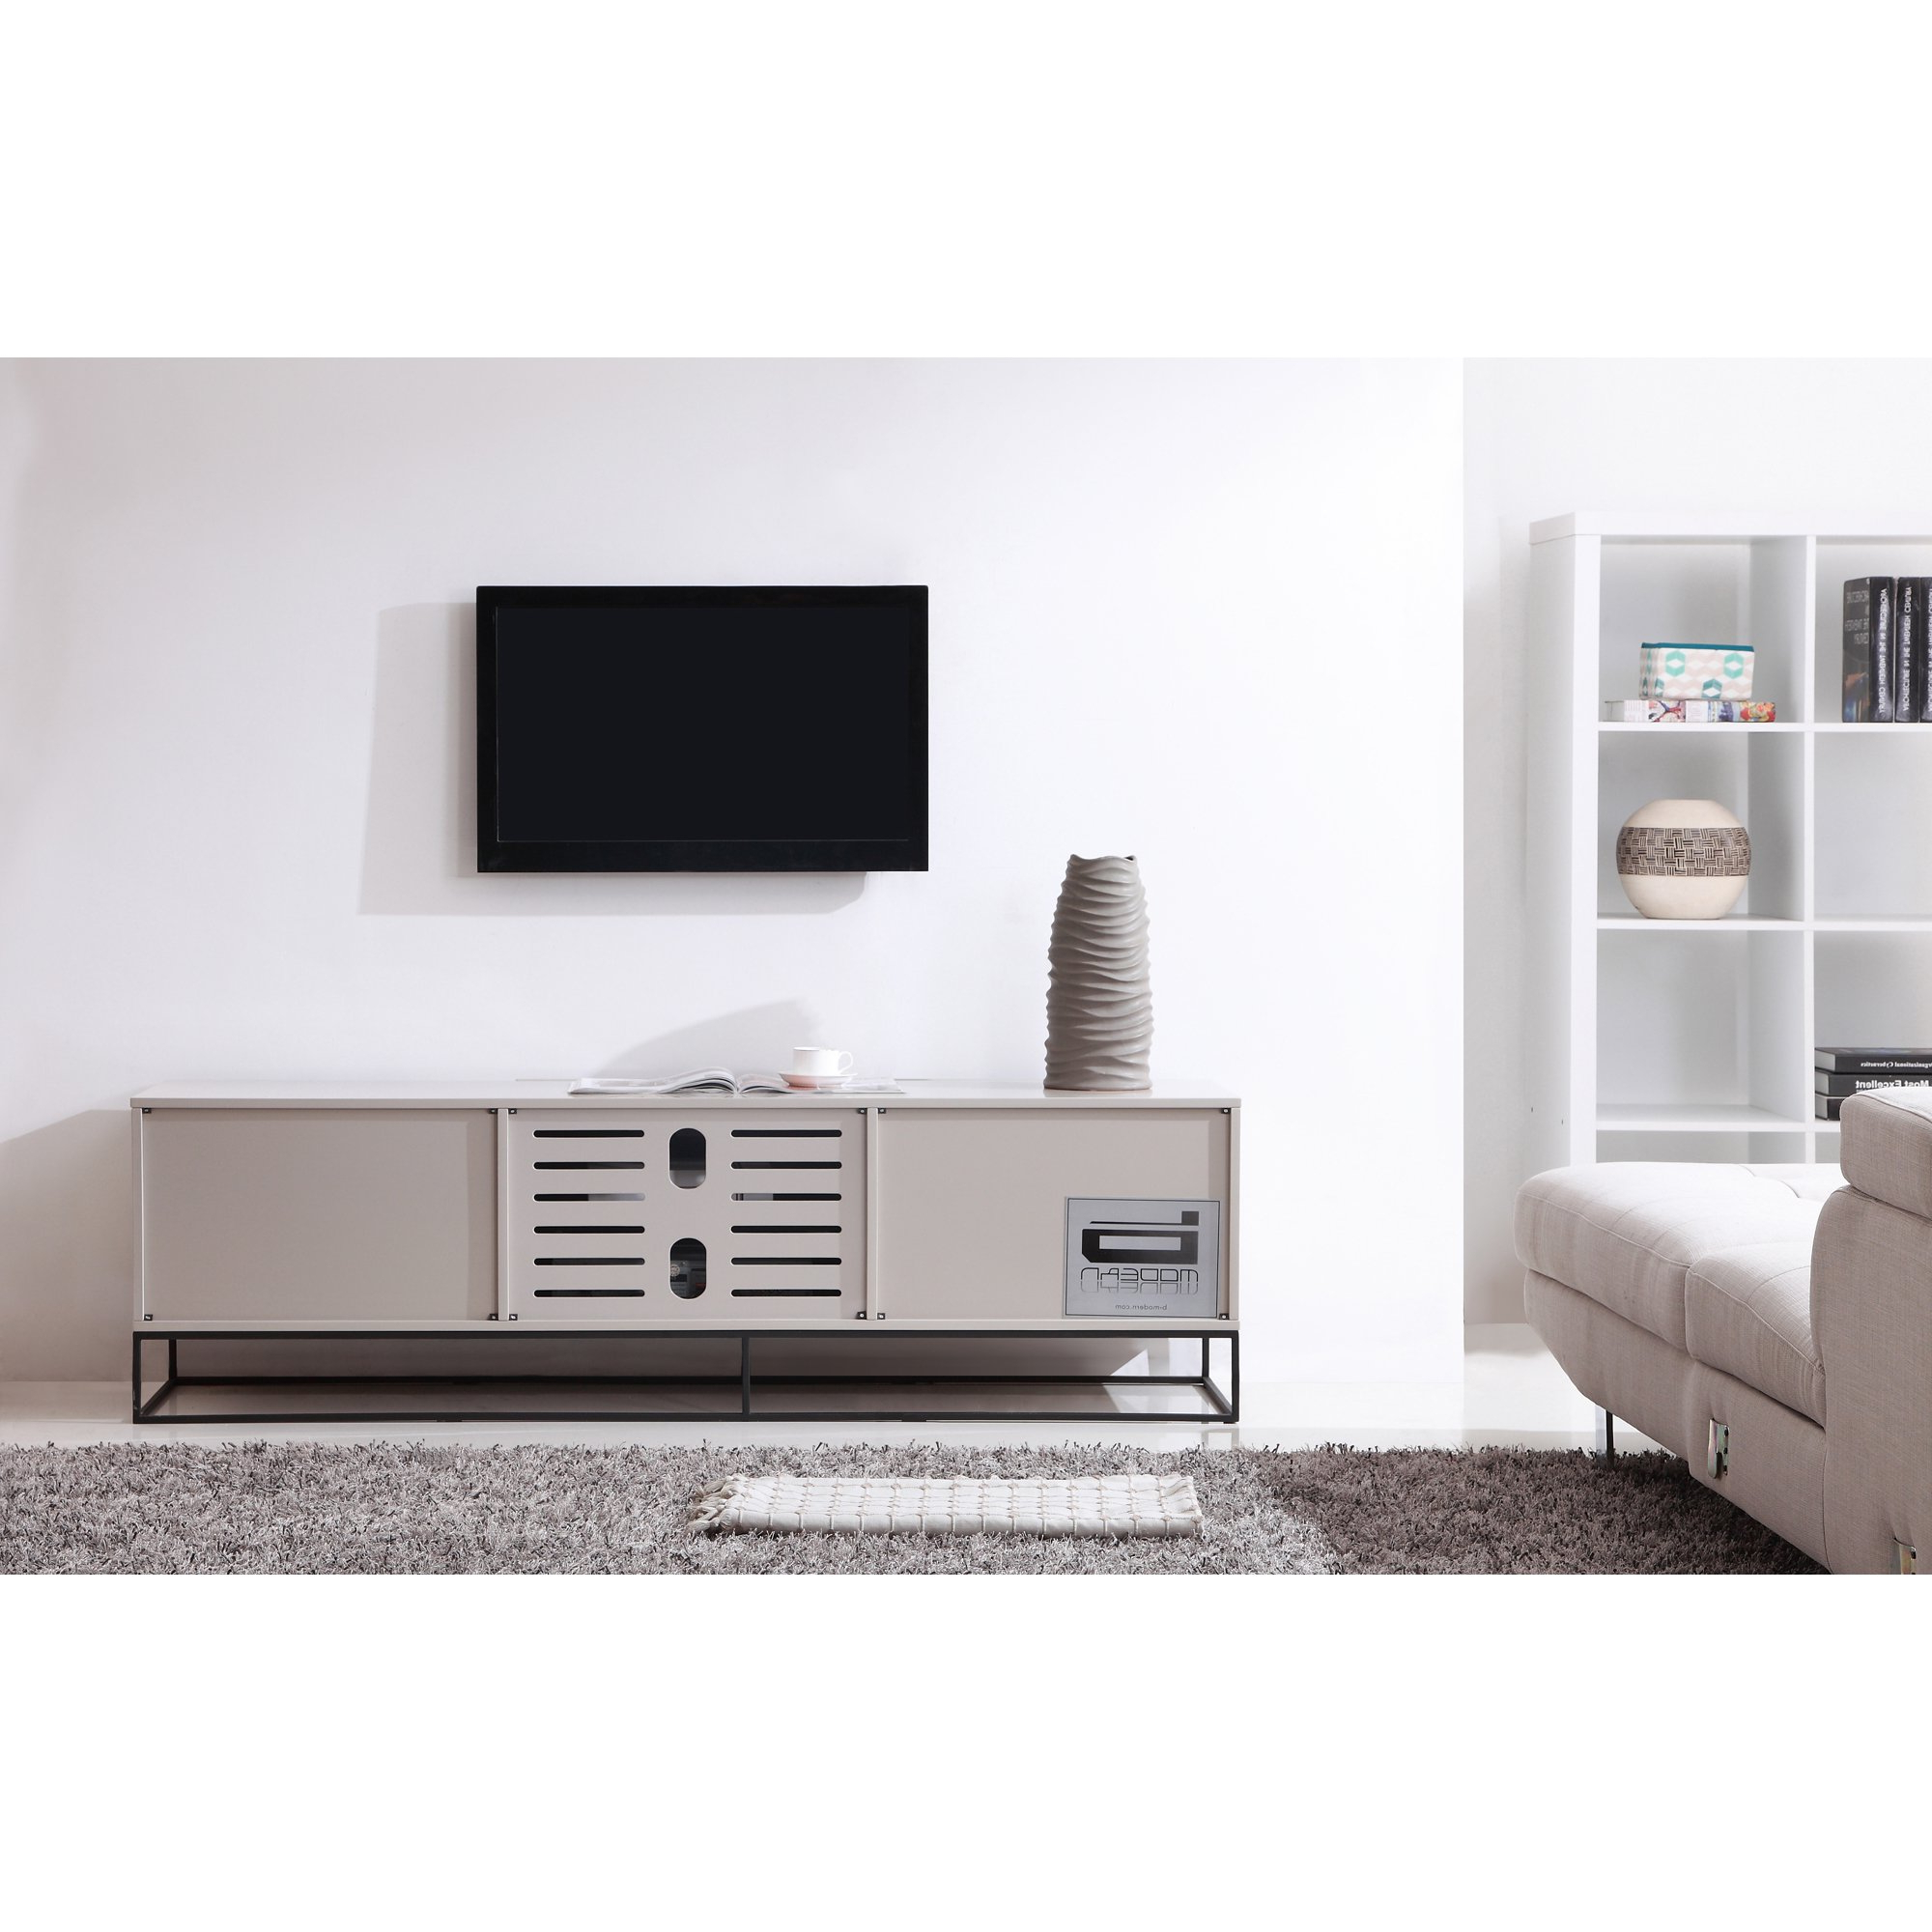 Preferred Shop B Modern Animator High Gloss Cream/ Black Modern Ir Tv Stand For Cream Gloss Tv Stands (Gallery 20 of 20)